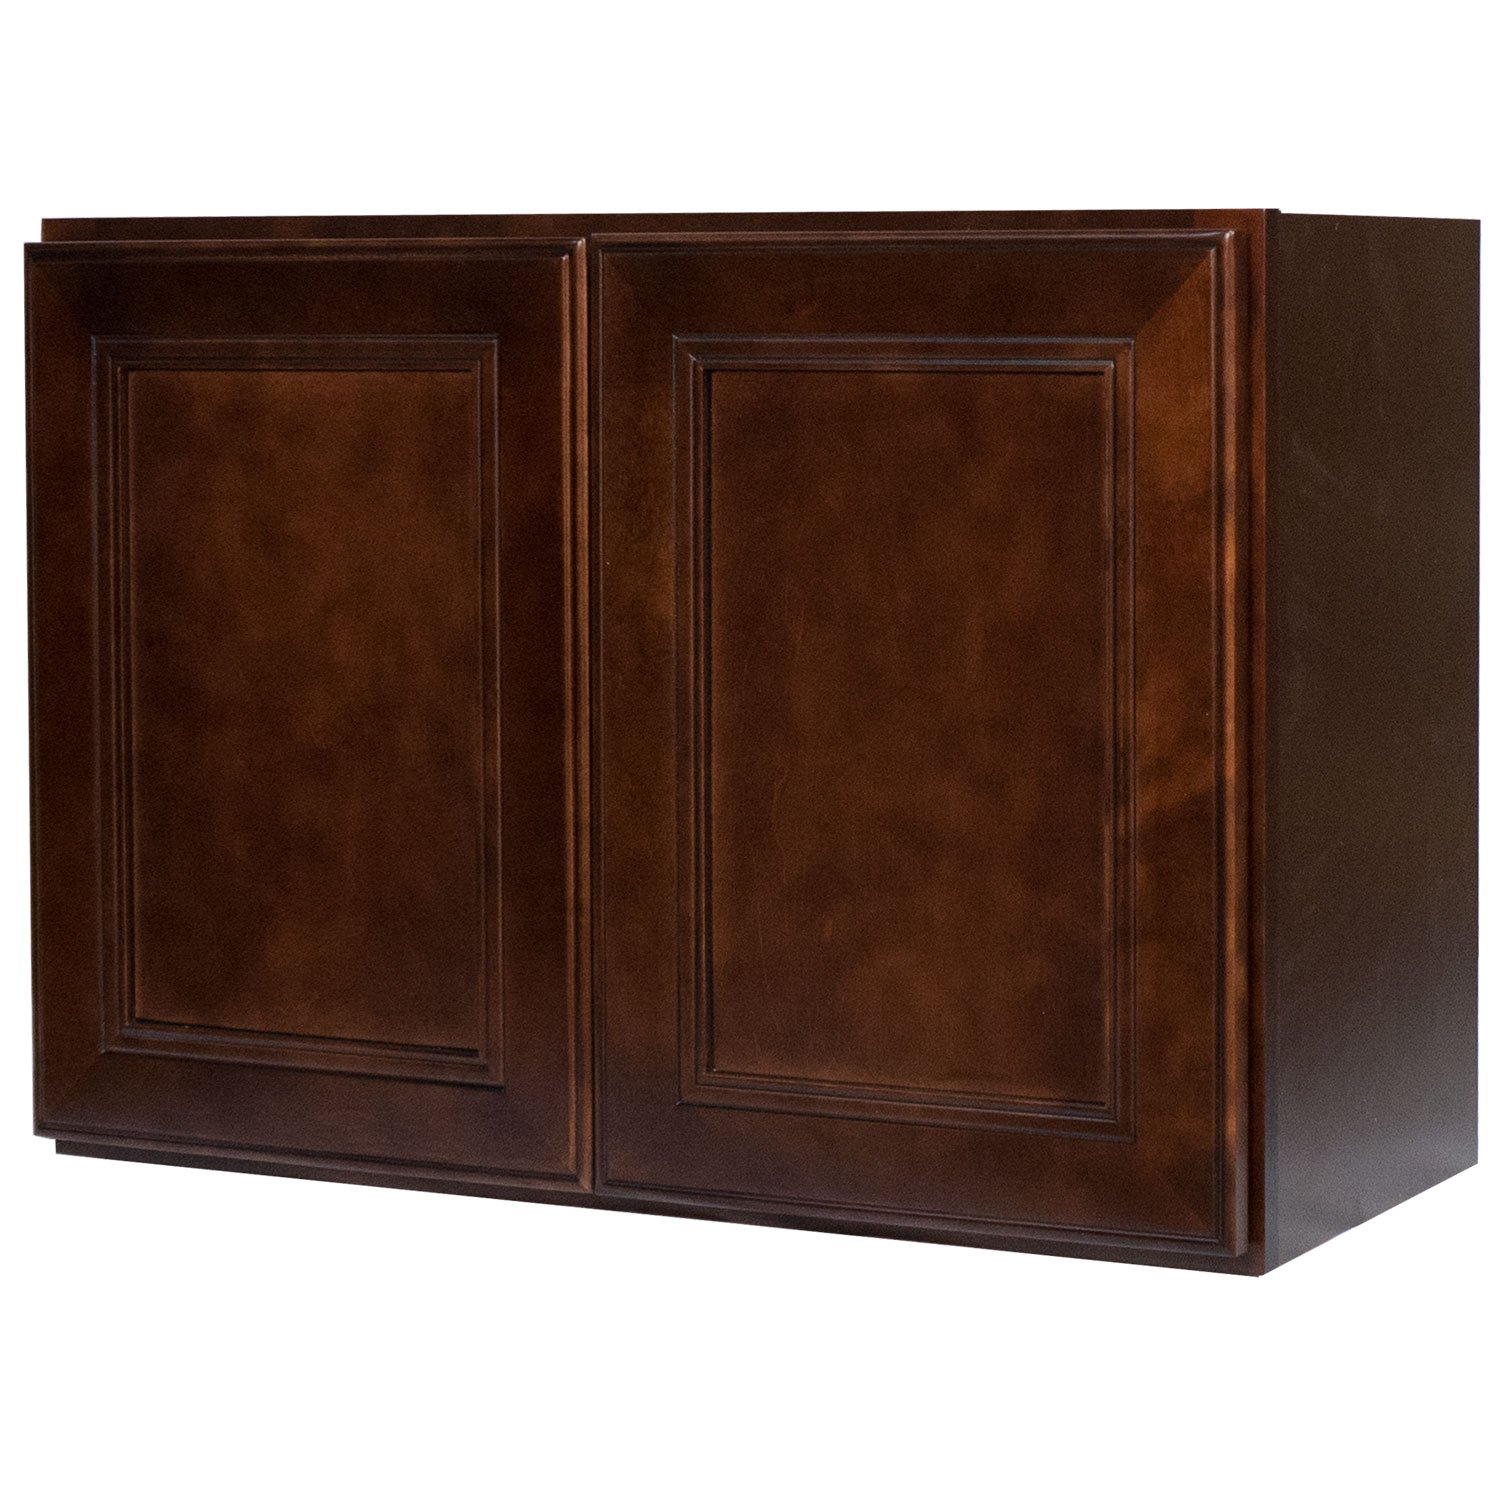 Bon Amazon.com: Everyday Cabinets 36 X 18 X 12 In.Soft Close Double Doors  Bridge Wall Cabinet In Leo Saddle With 2 Doors RTA: Kitchen U0026 Dining